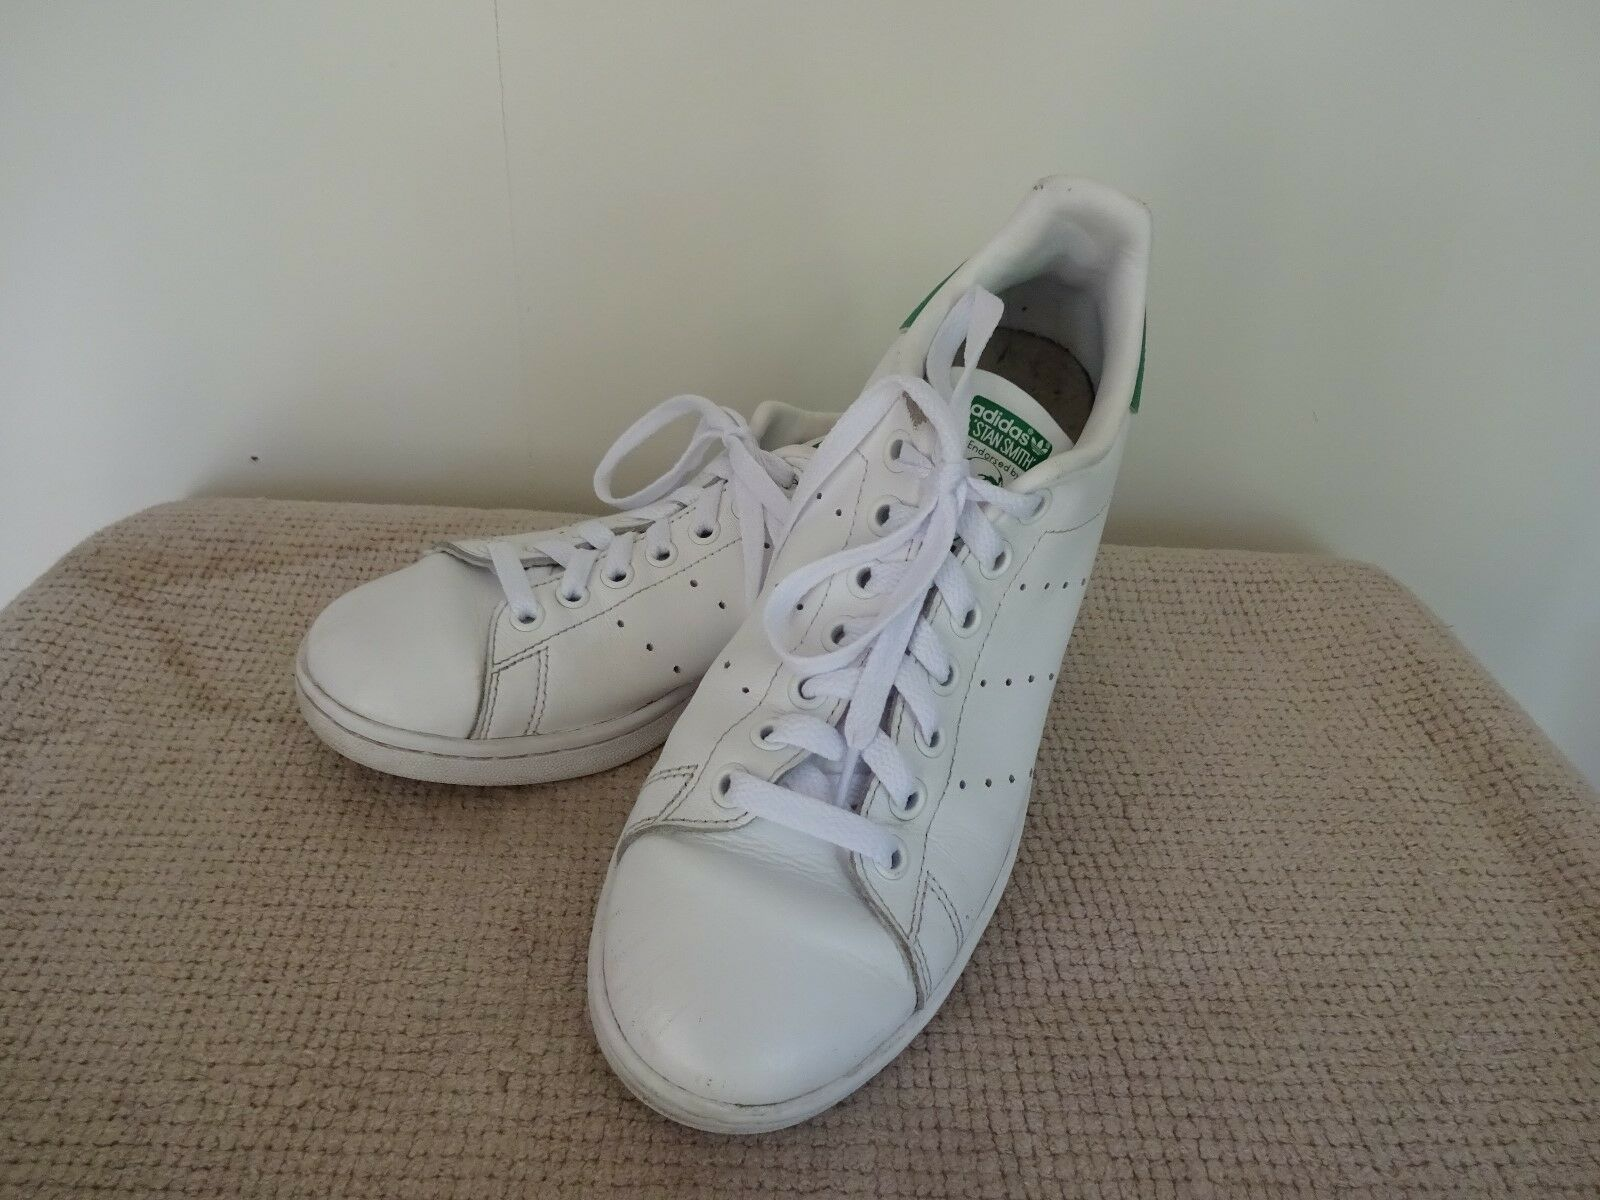 Men's Adidas 'Stan Smith' Sneakers White Green Comfortable New shoes for men and women, limited time discount